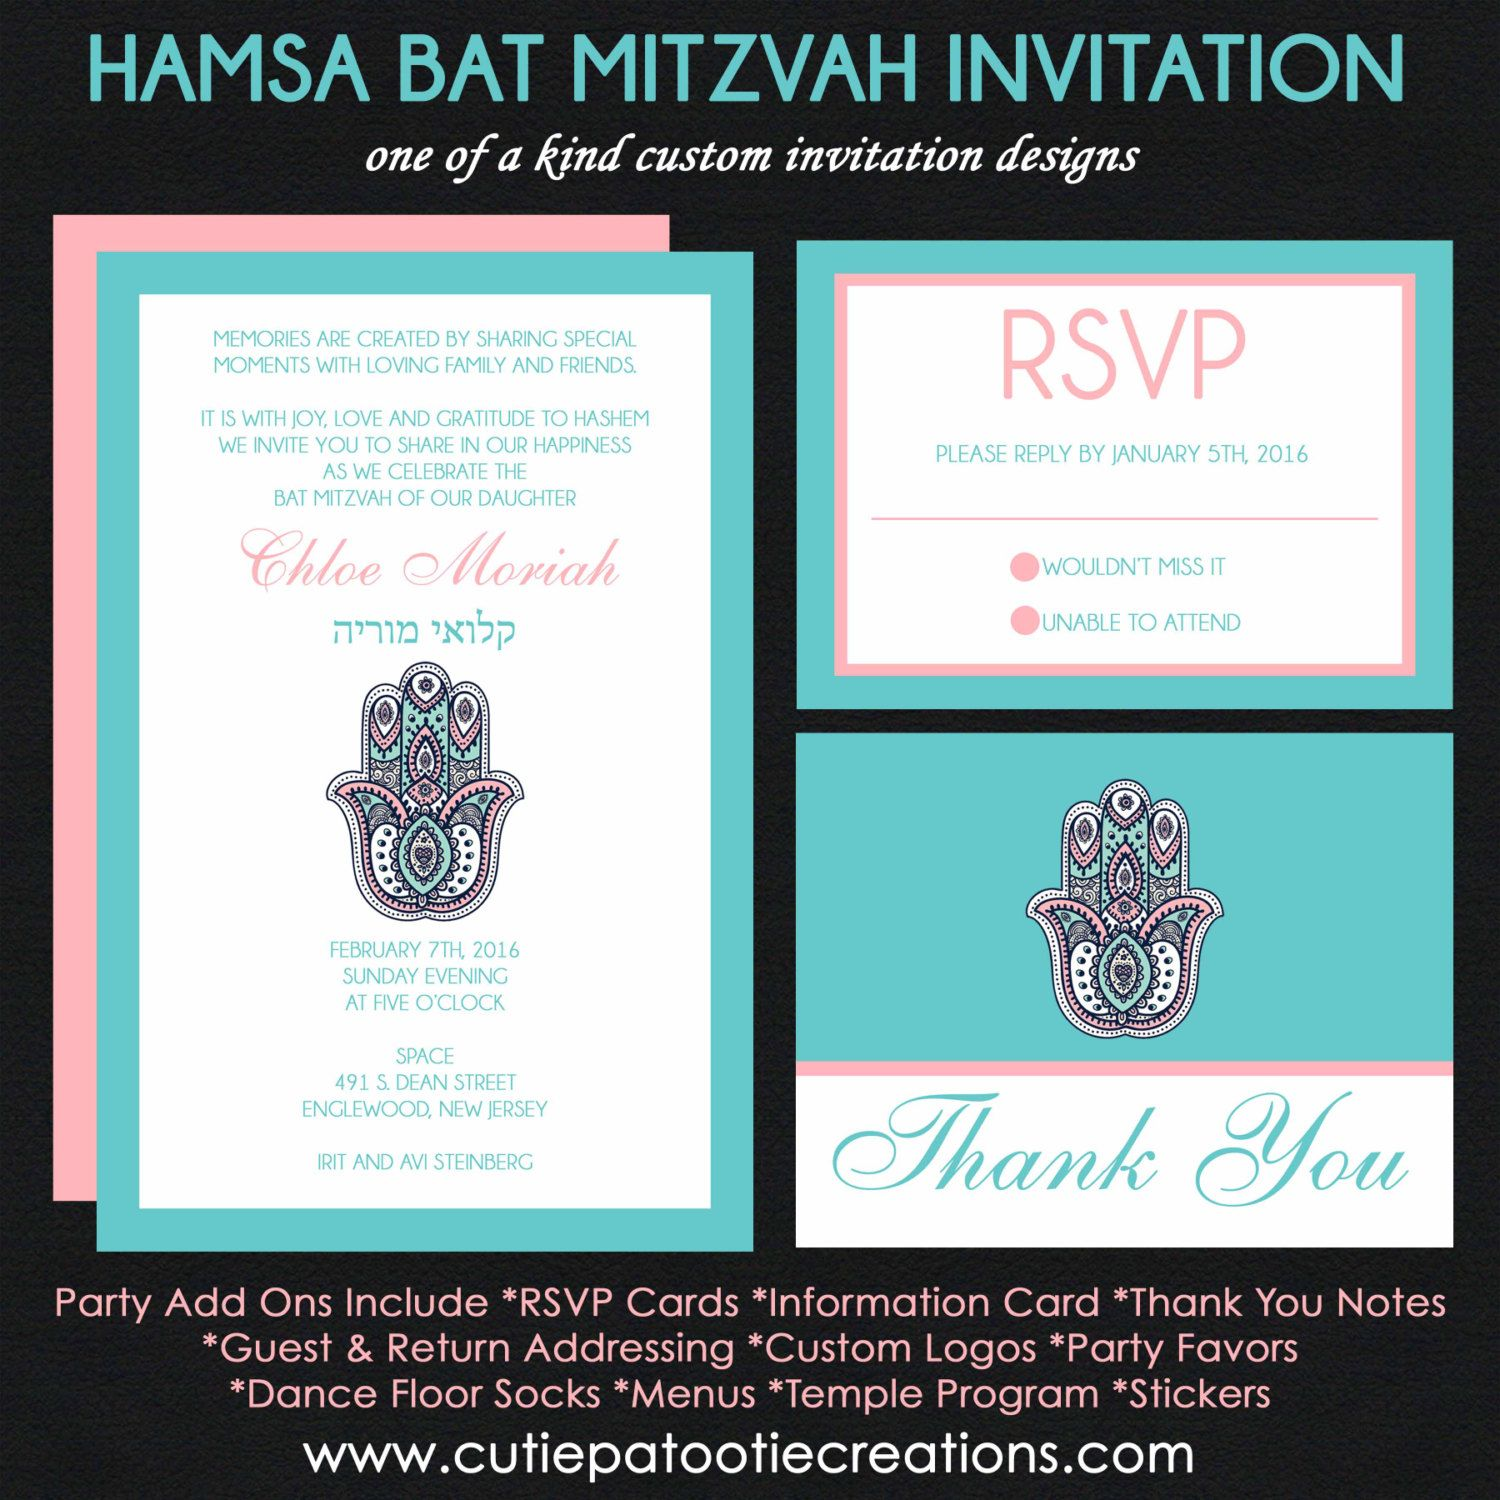 Hamsa Hand Bat Mitzvah Invitation Pink and Teal Blue RSVP Reply – Reply to Party Invitation